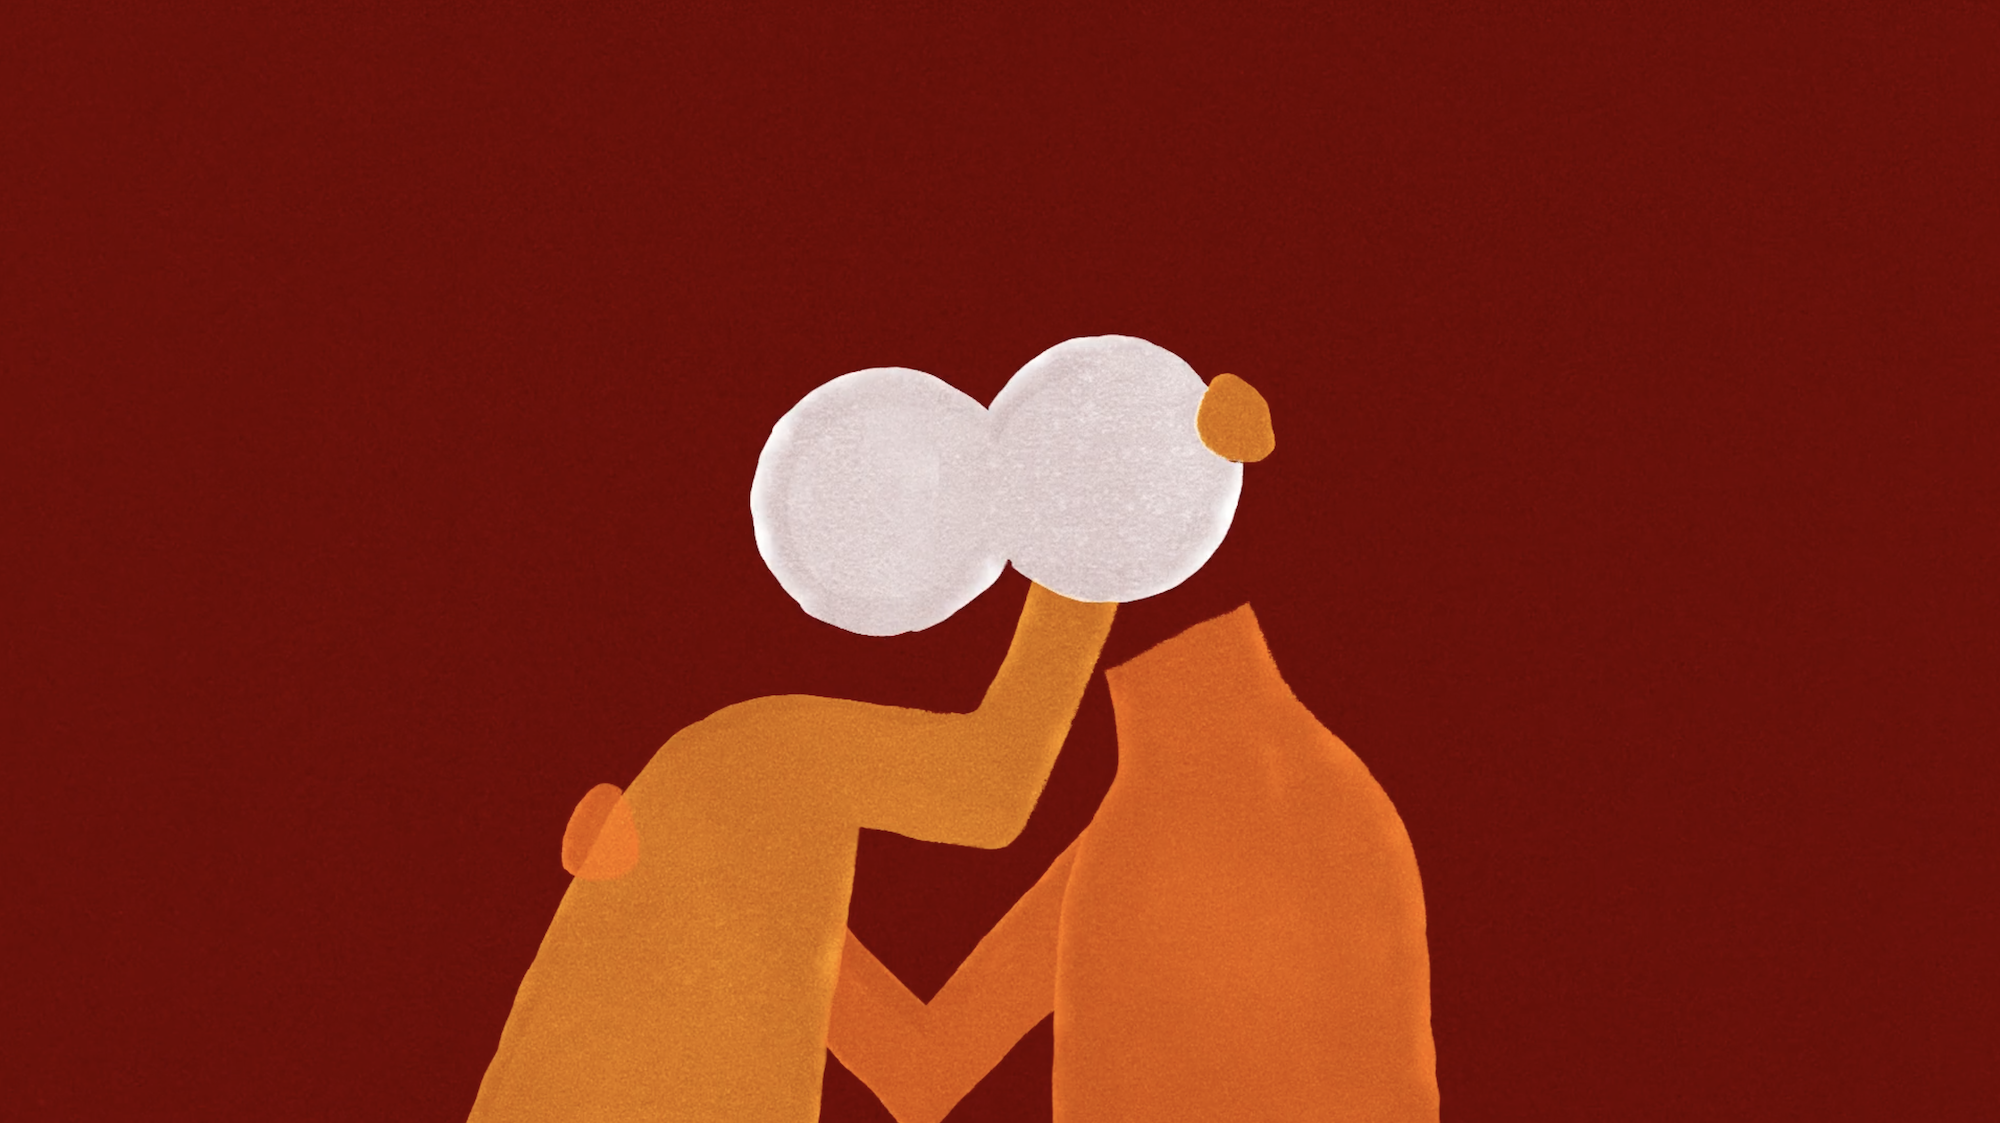 Screenshot from Tomorrow's on Fire - Two animated figures holding each other